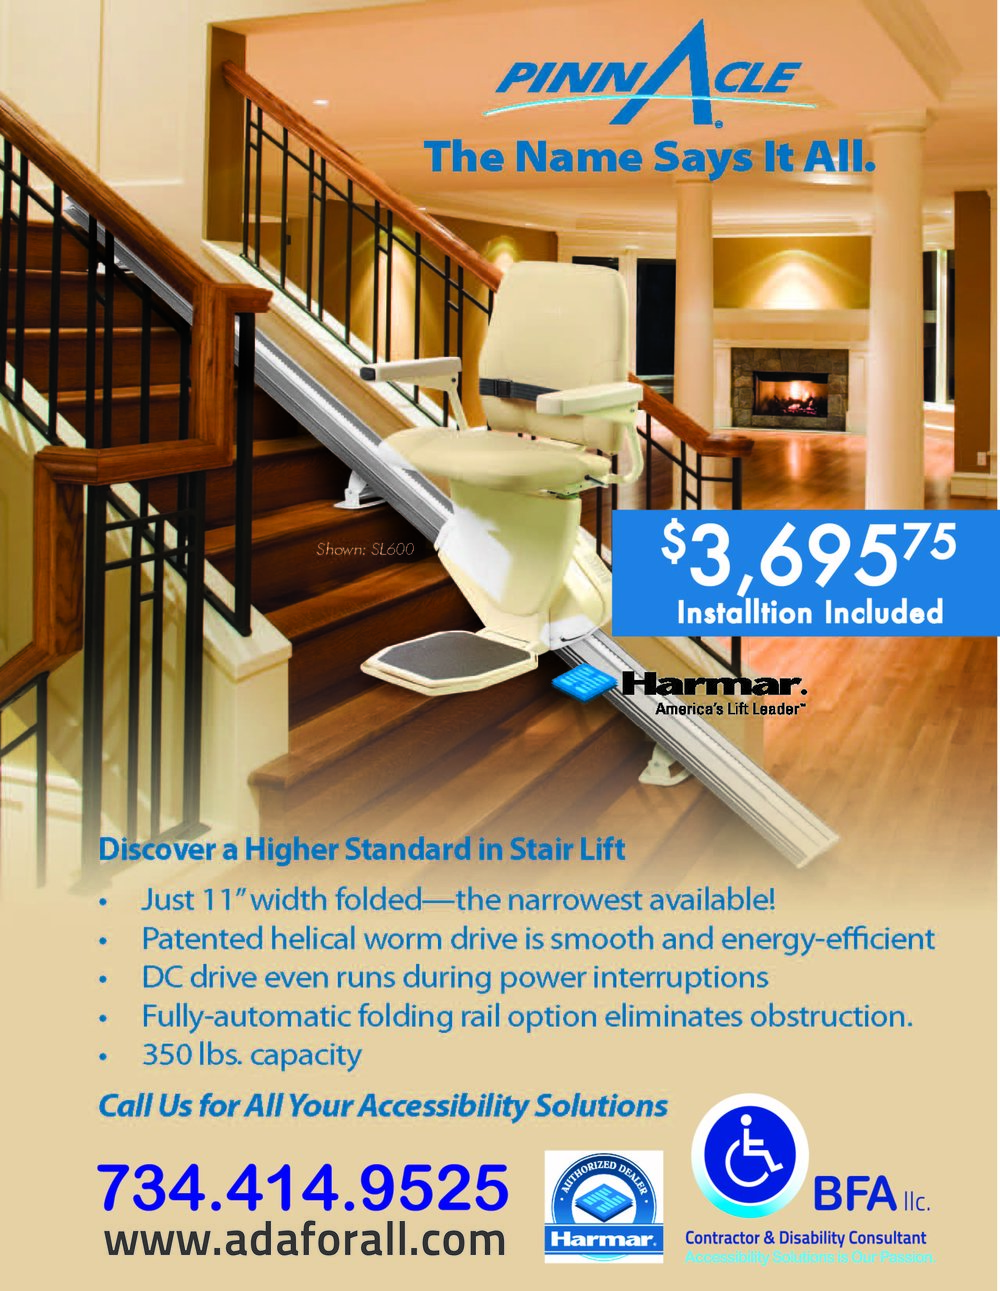 HARMAR Pinnacle Stair Lift  is a great value. Call us today at 734-414-9525.